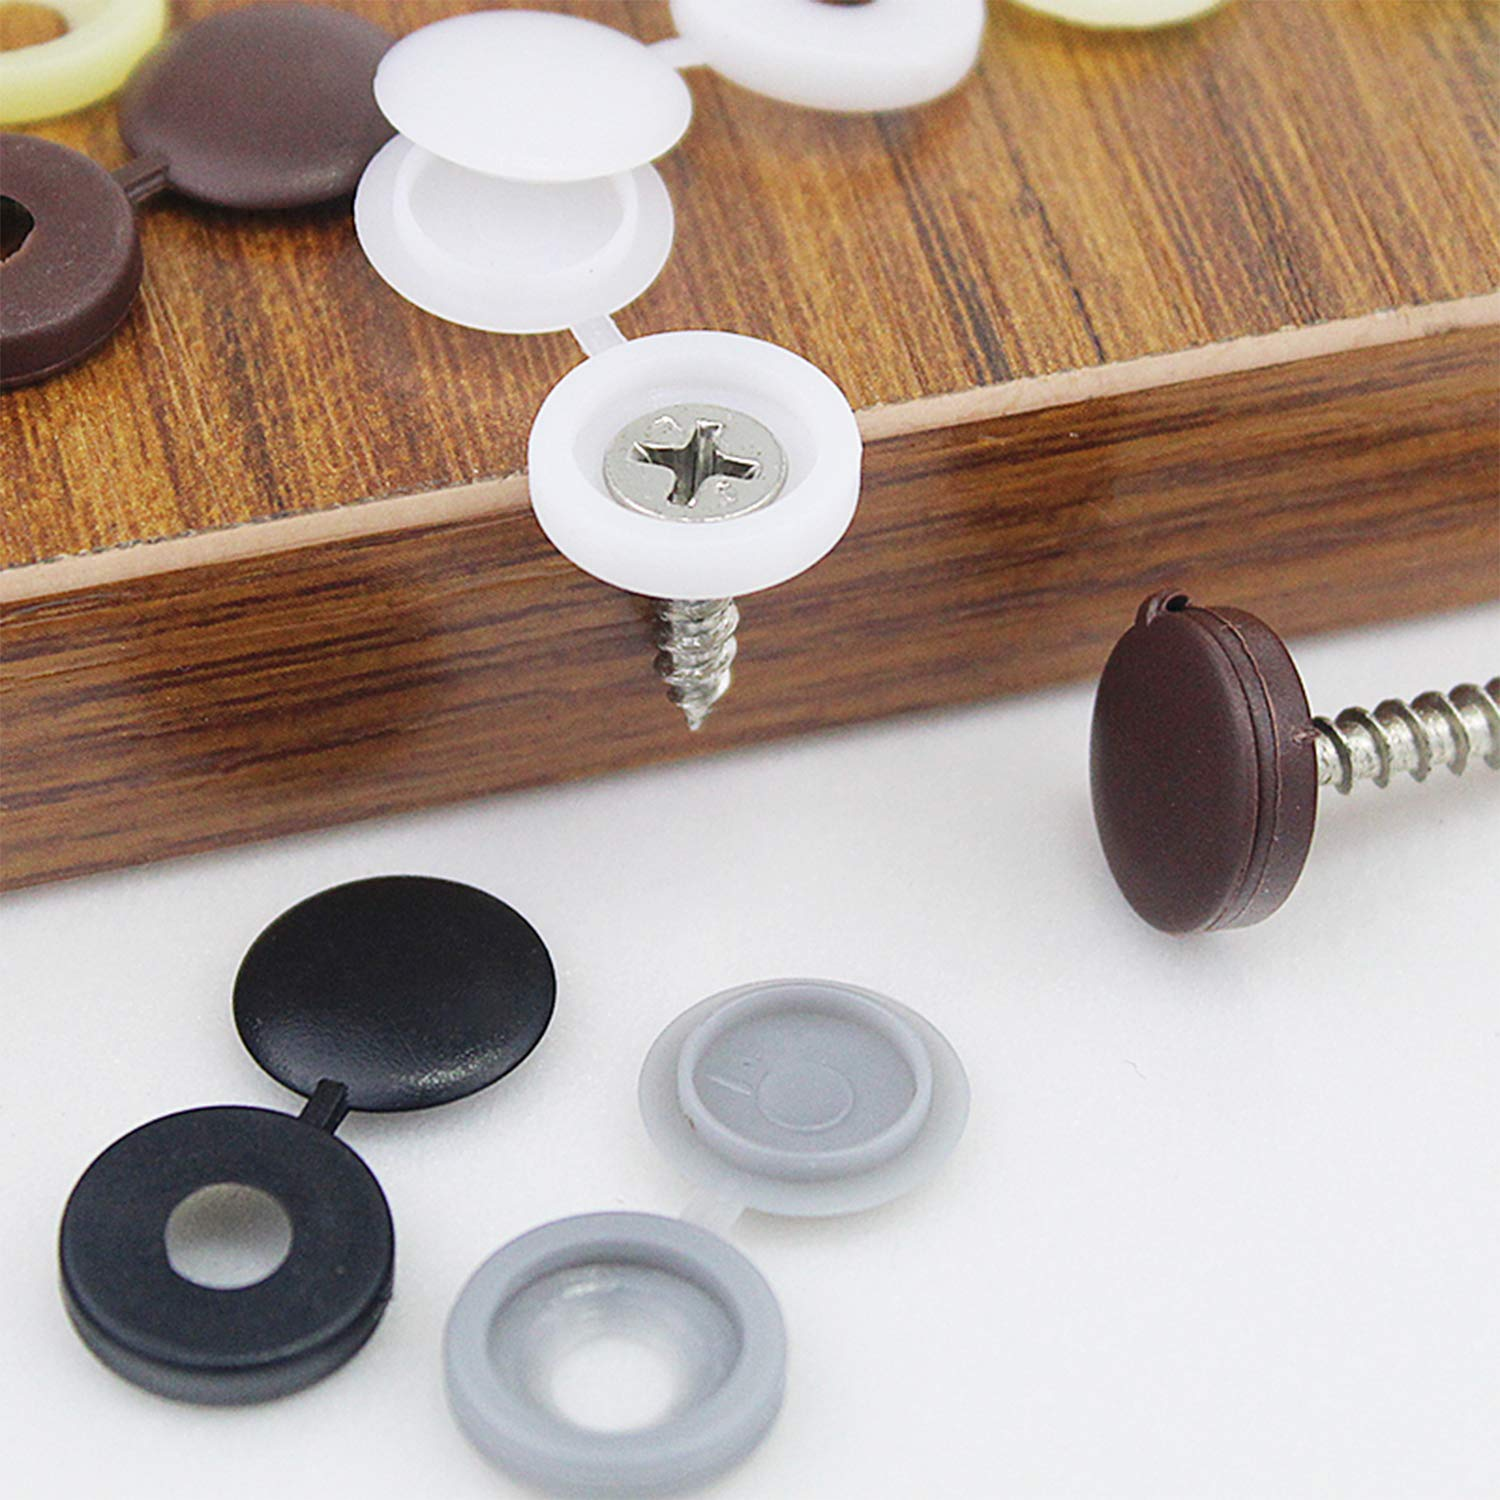 50Pcs Hinged Plastic Screw Cover Fold Caps Button For Furniture Decorative New